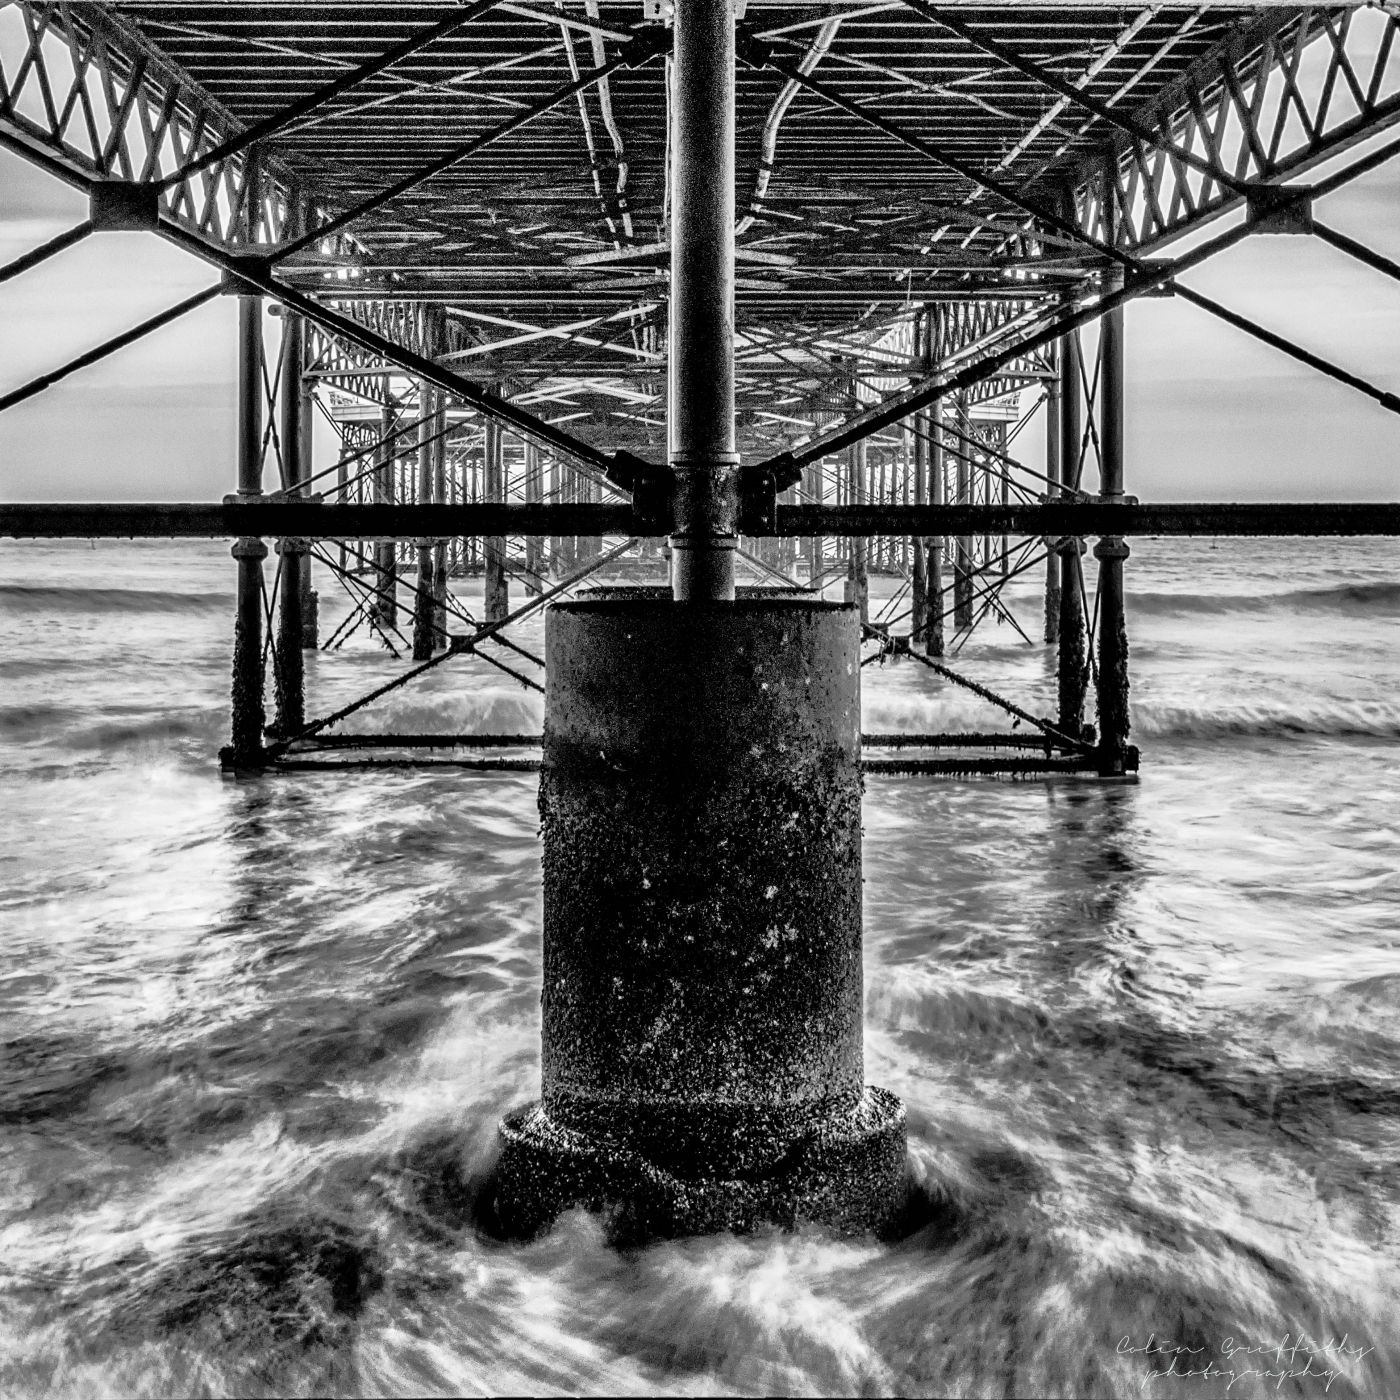 Cromer Pier, United Kingdom